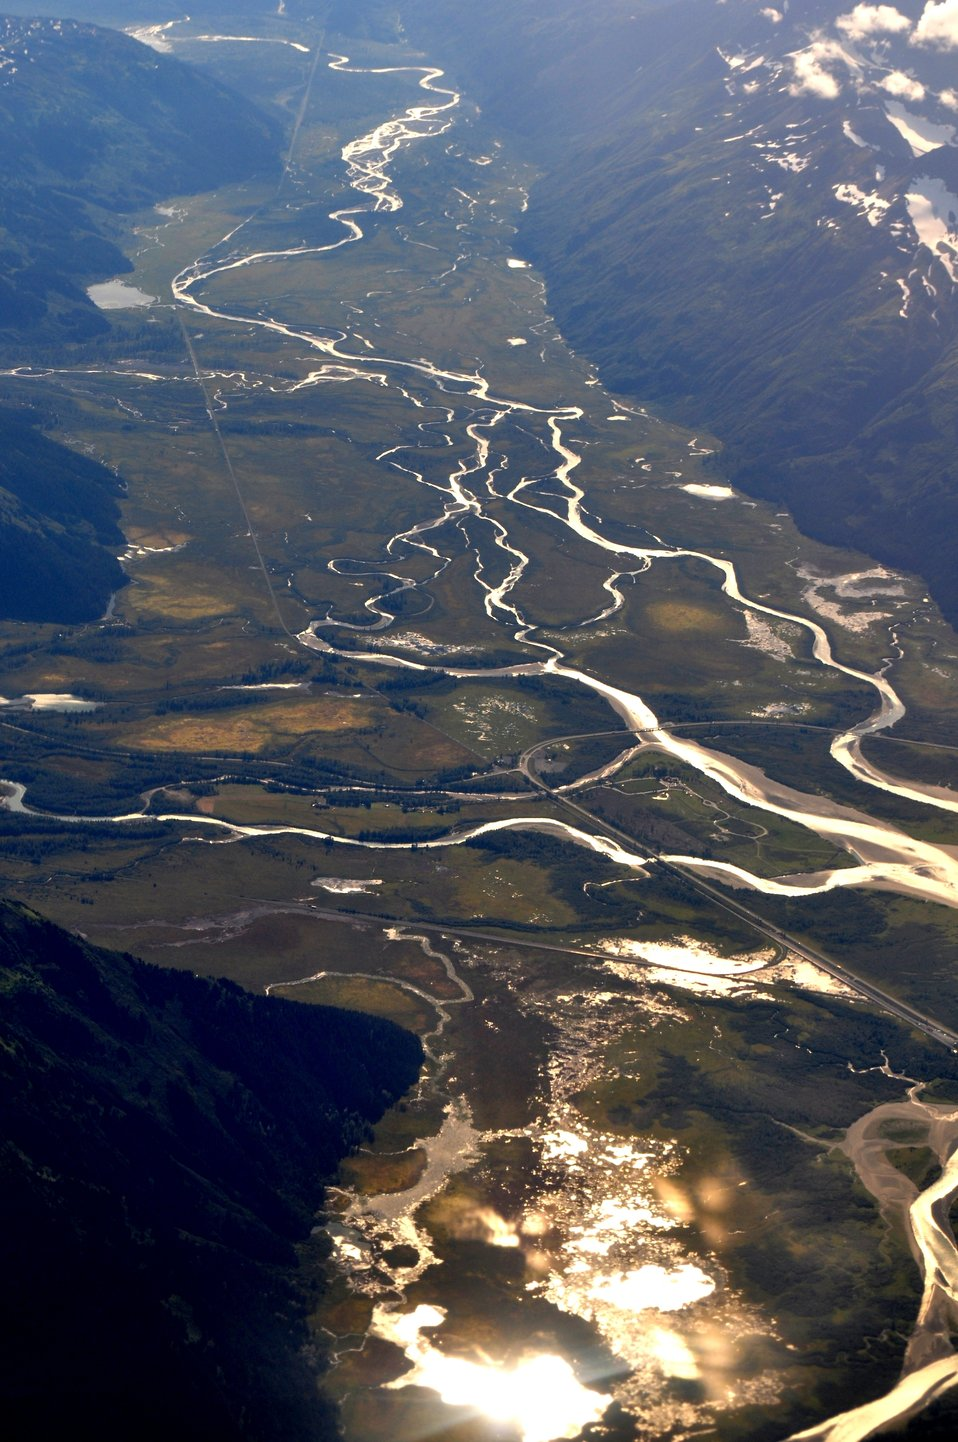 Junction of Portage Glacier Road and Seward Highway.  Bridges cross over Placer River.  Shiny area at bottom of photo is east end of Turnagain Inlet.